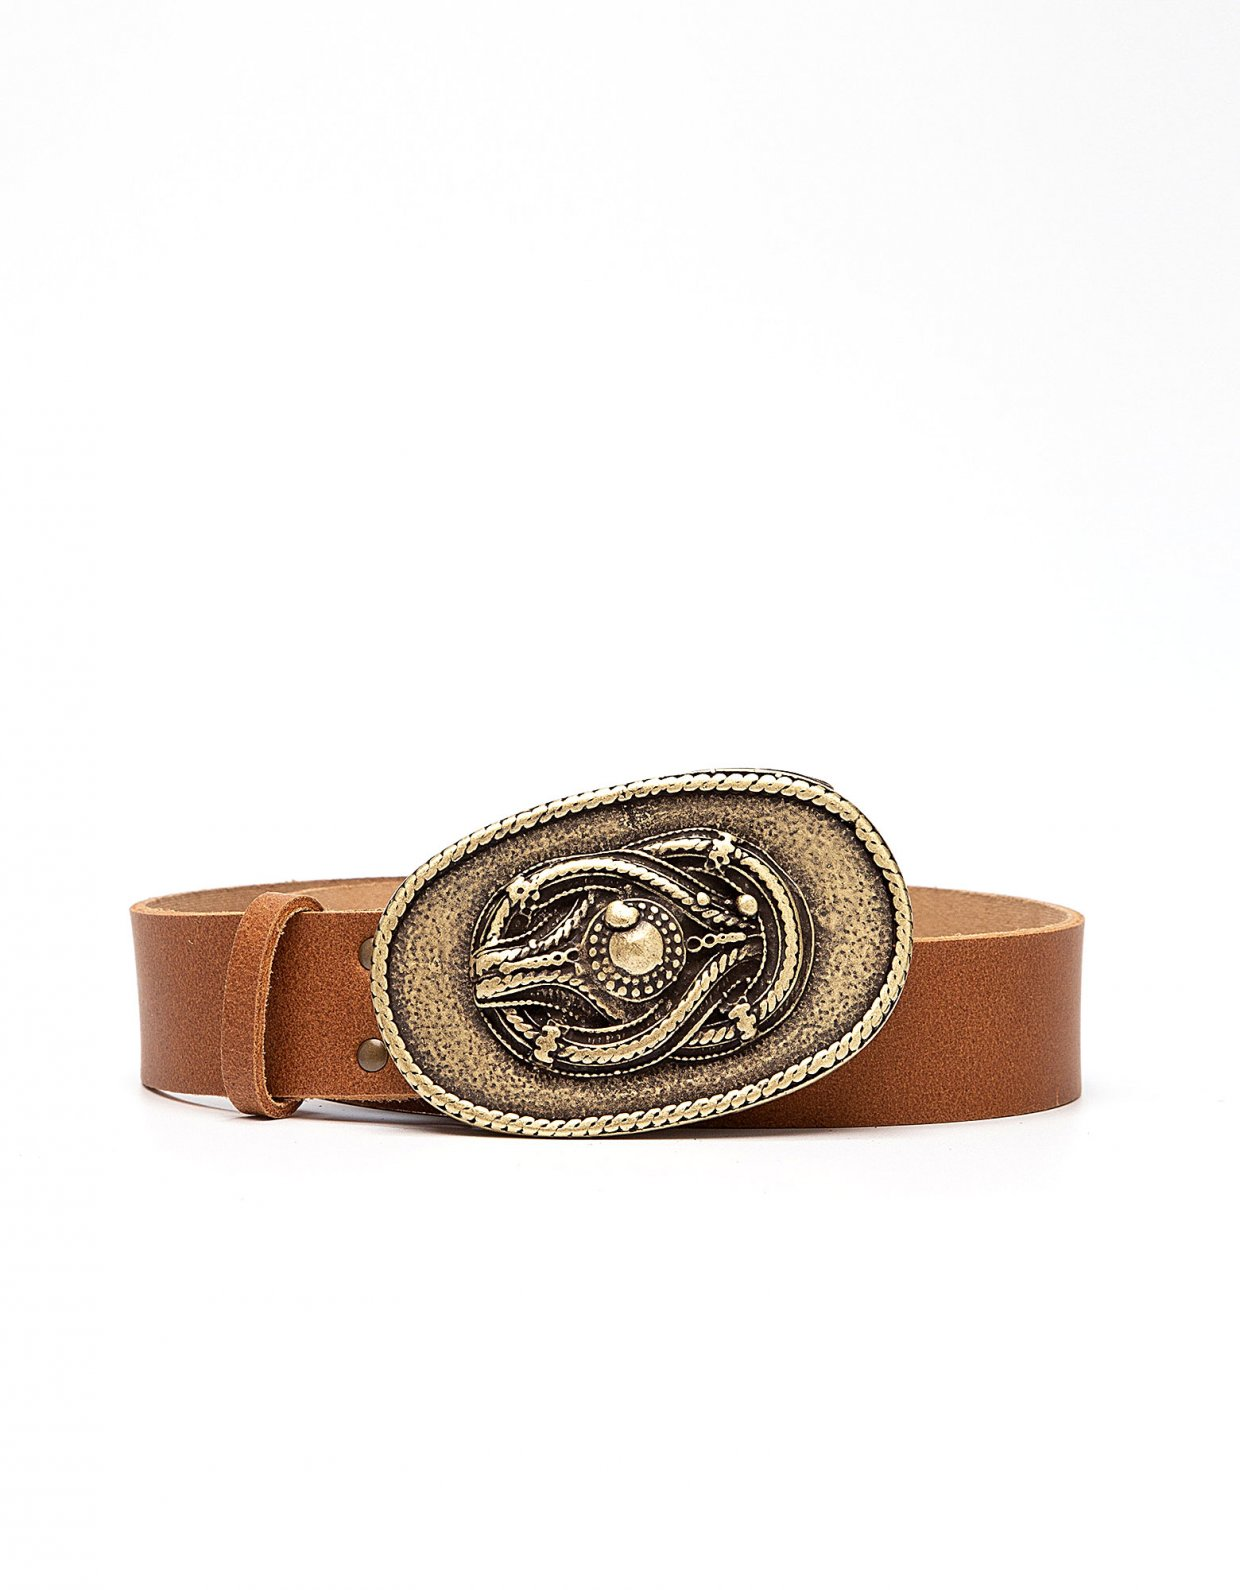 Peace & Chaos Knot leather belt tanned